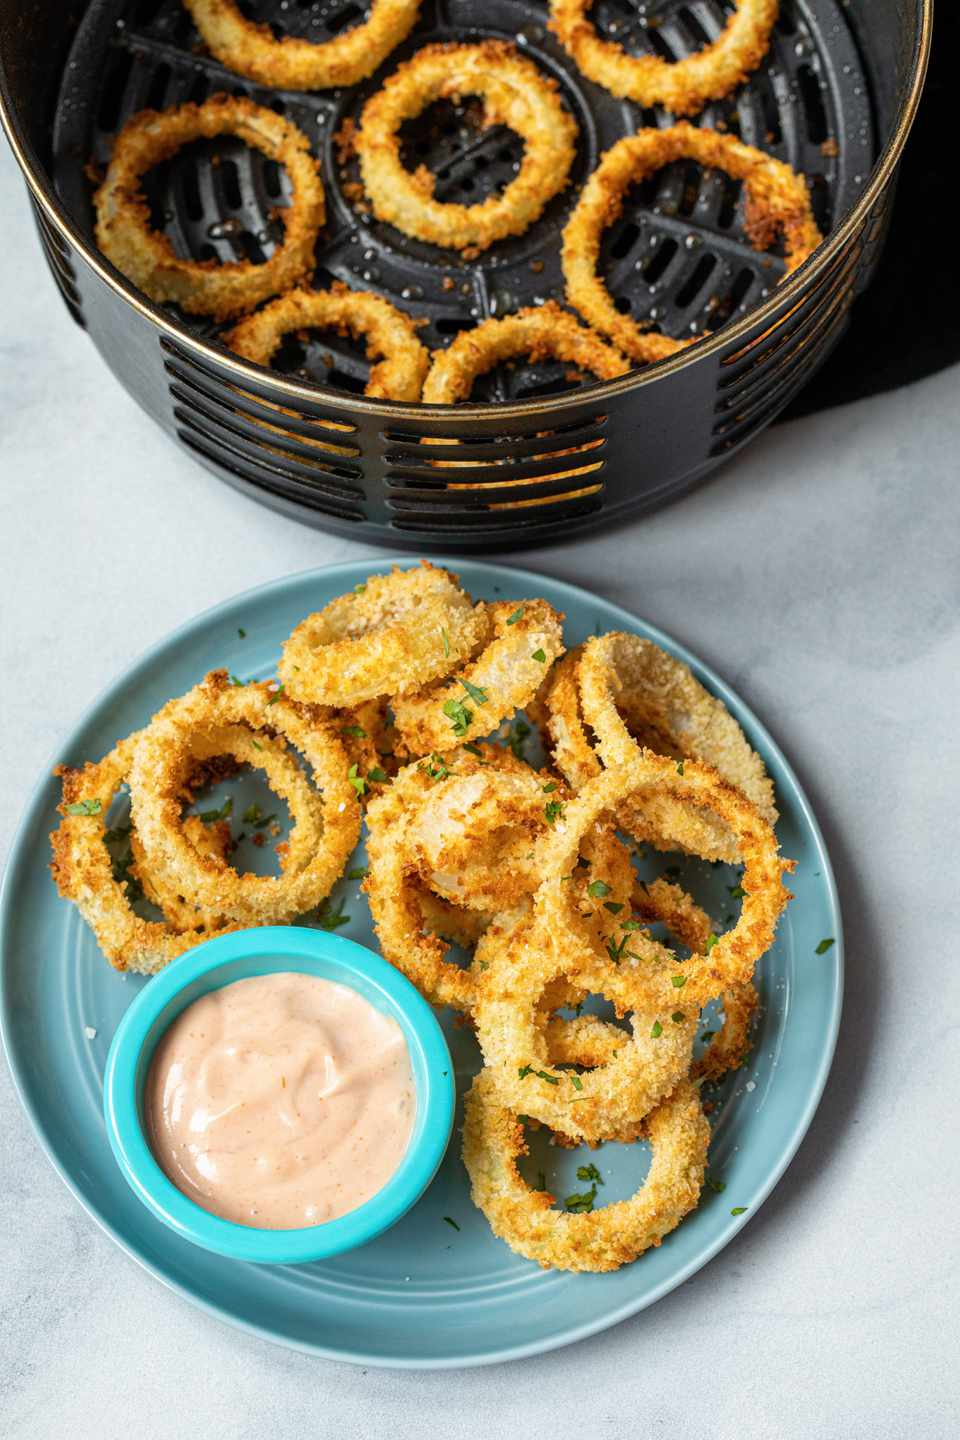 Crispy, Homemade Air Fryer Onion Rings on a plate with sauce and an air fryer basket with more onion rings behind the plate.